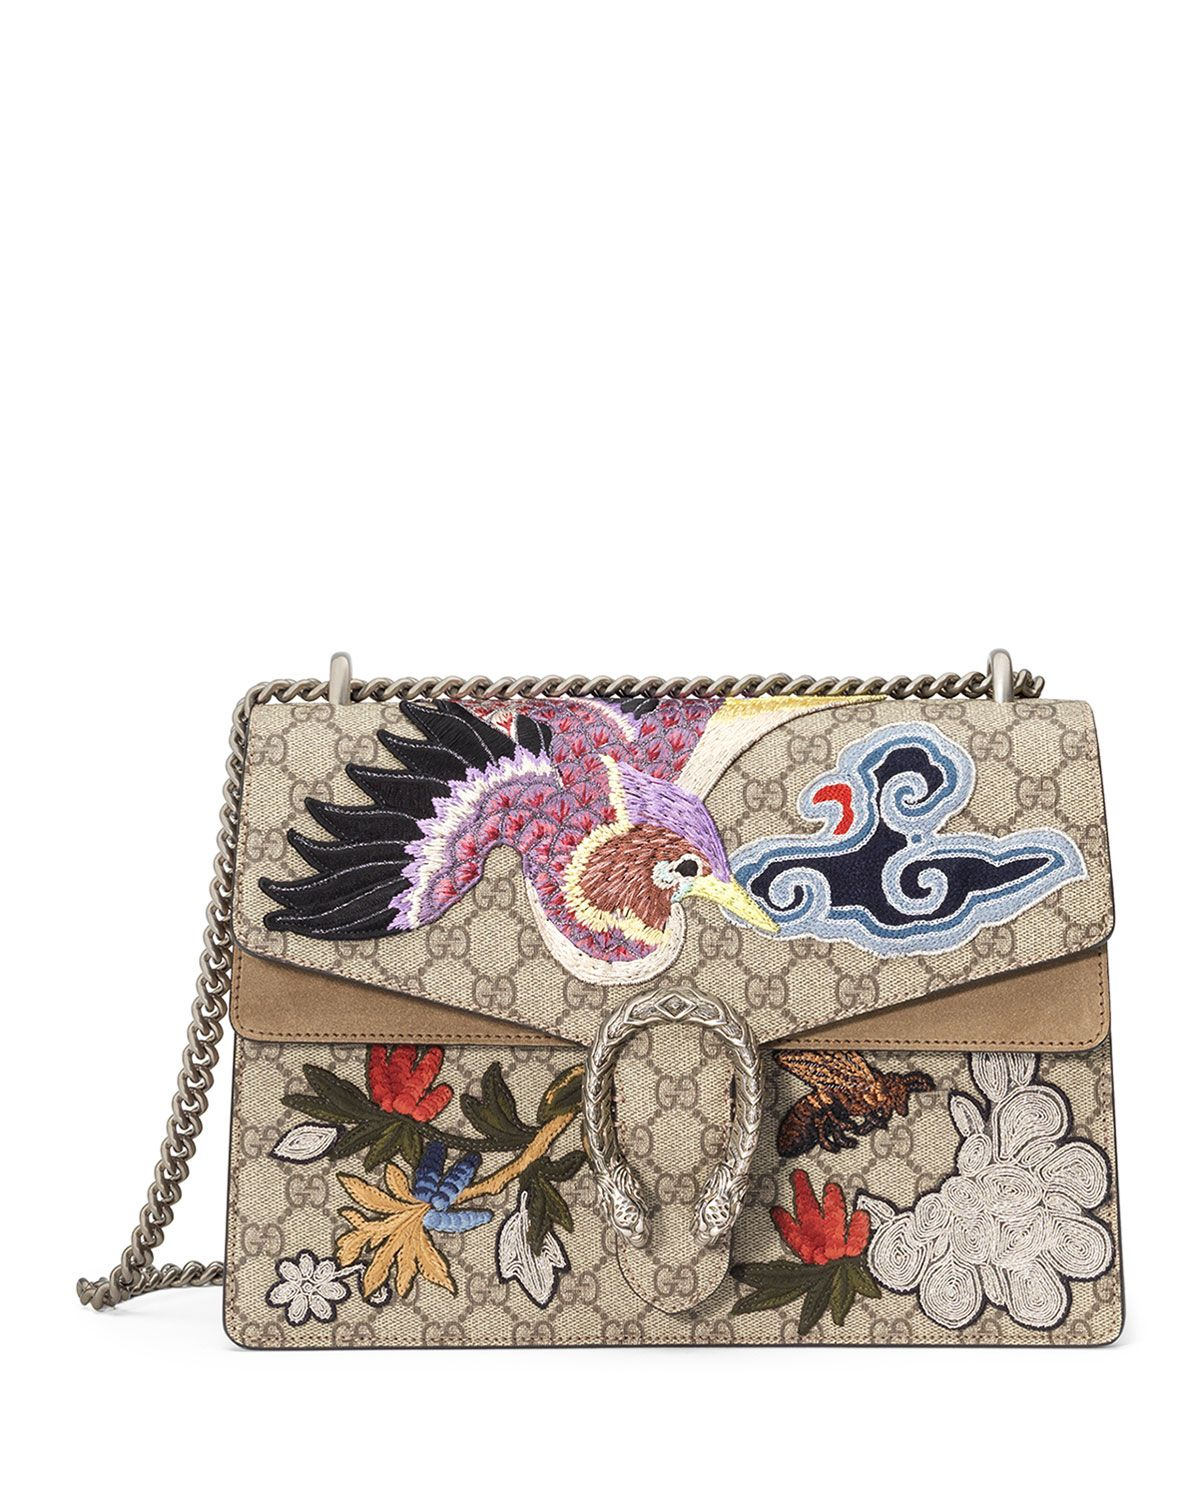 55245ee5da48 Gucci Dionysus Medium Bird Embroidered Shoulder Bag, Multi, Size: M